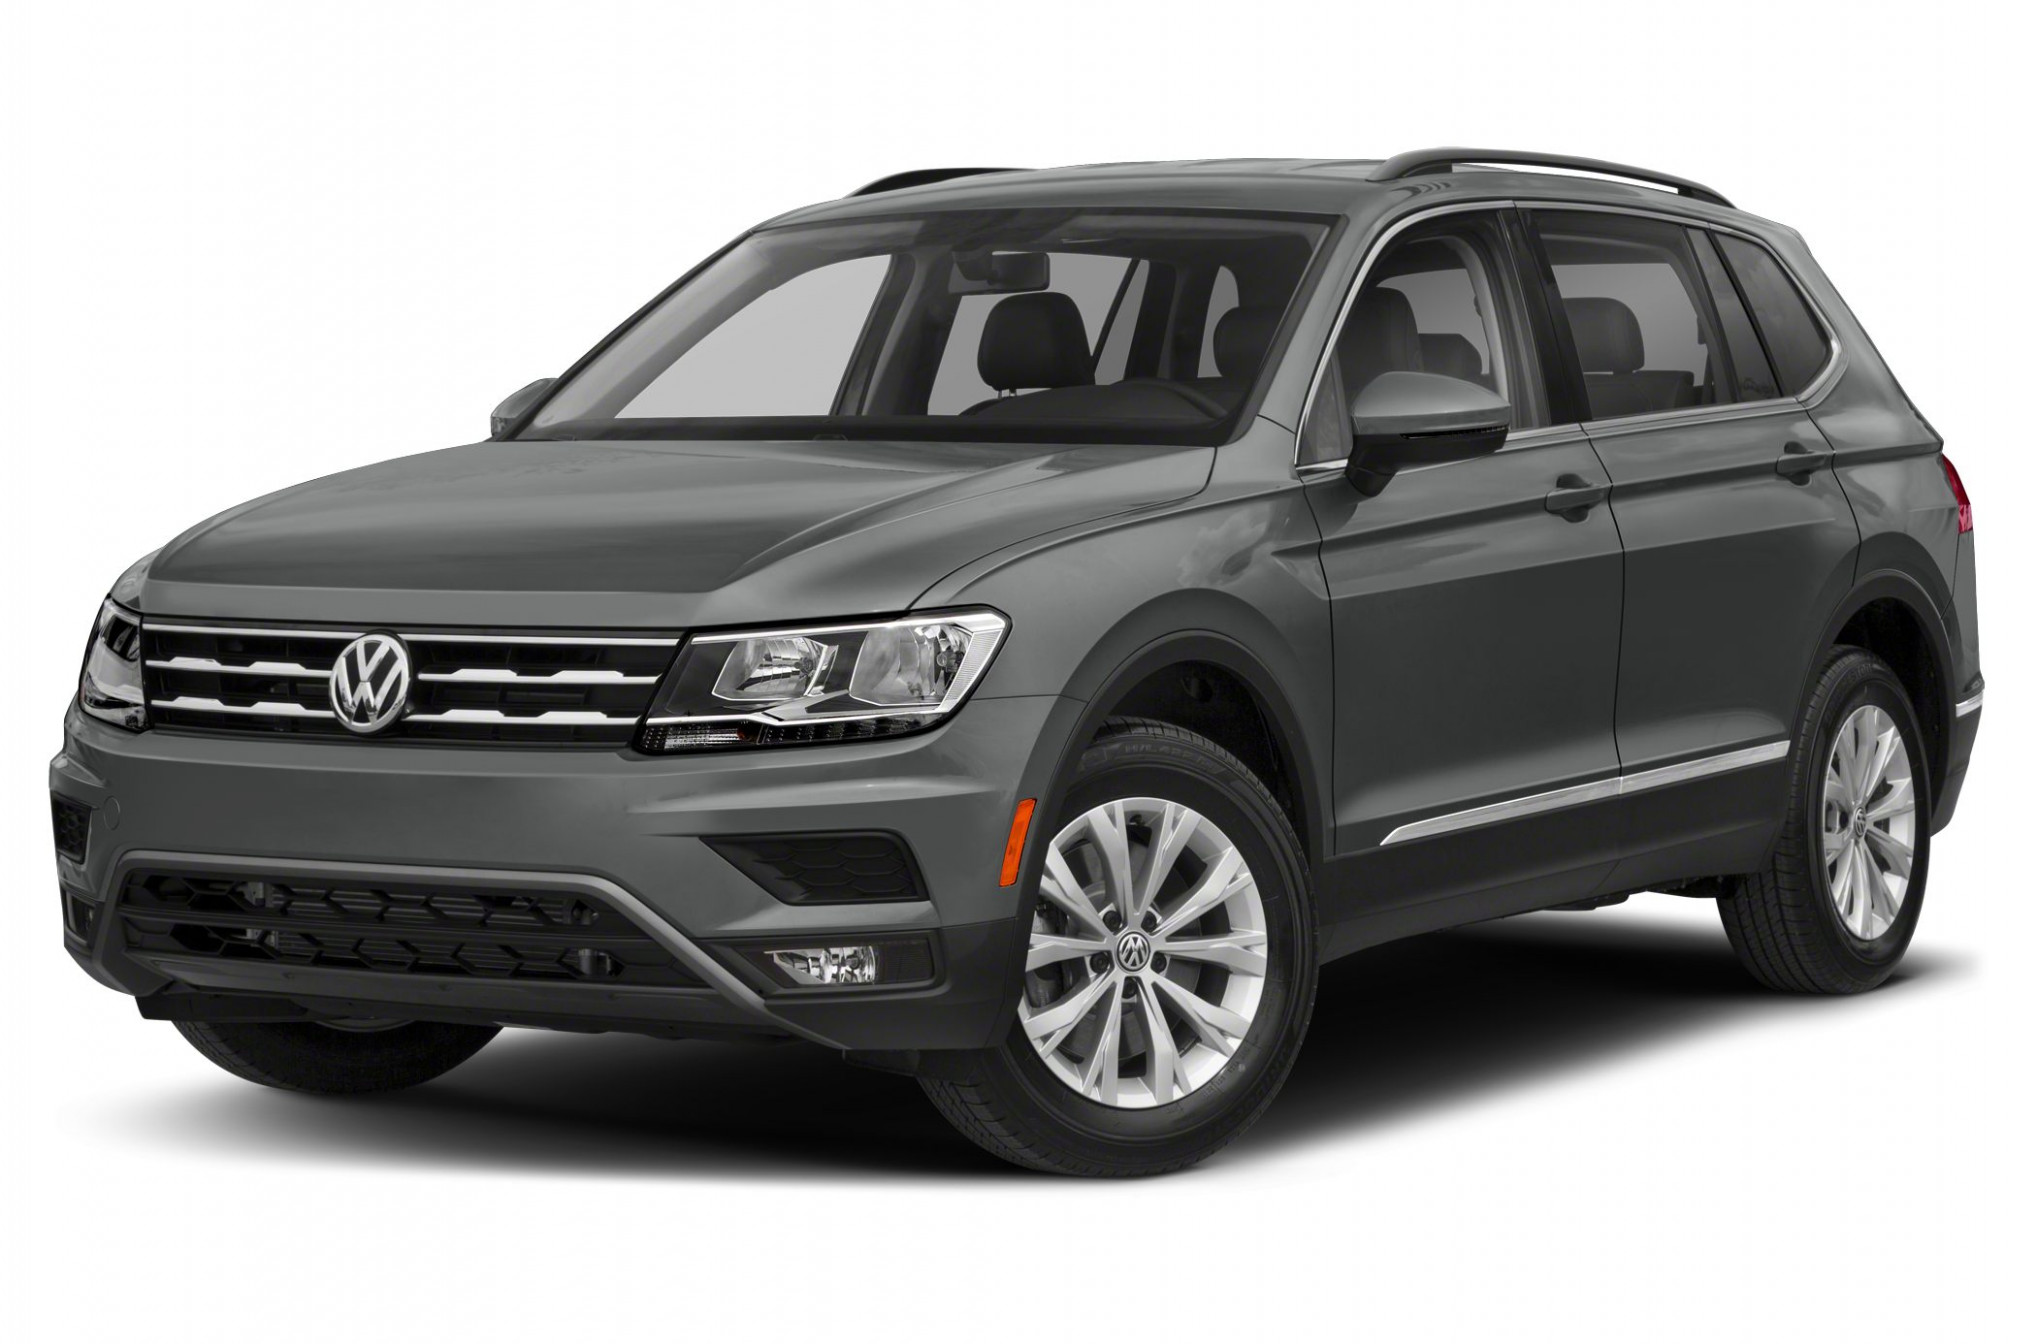 8 Volkswagen Tiguan 8.8T SE 8dr All-wheel Drive 8MOTION Specs and Prices